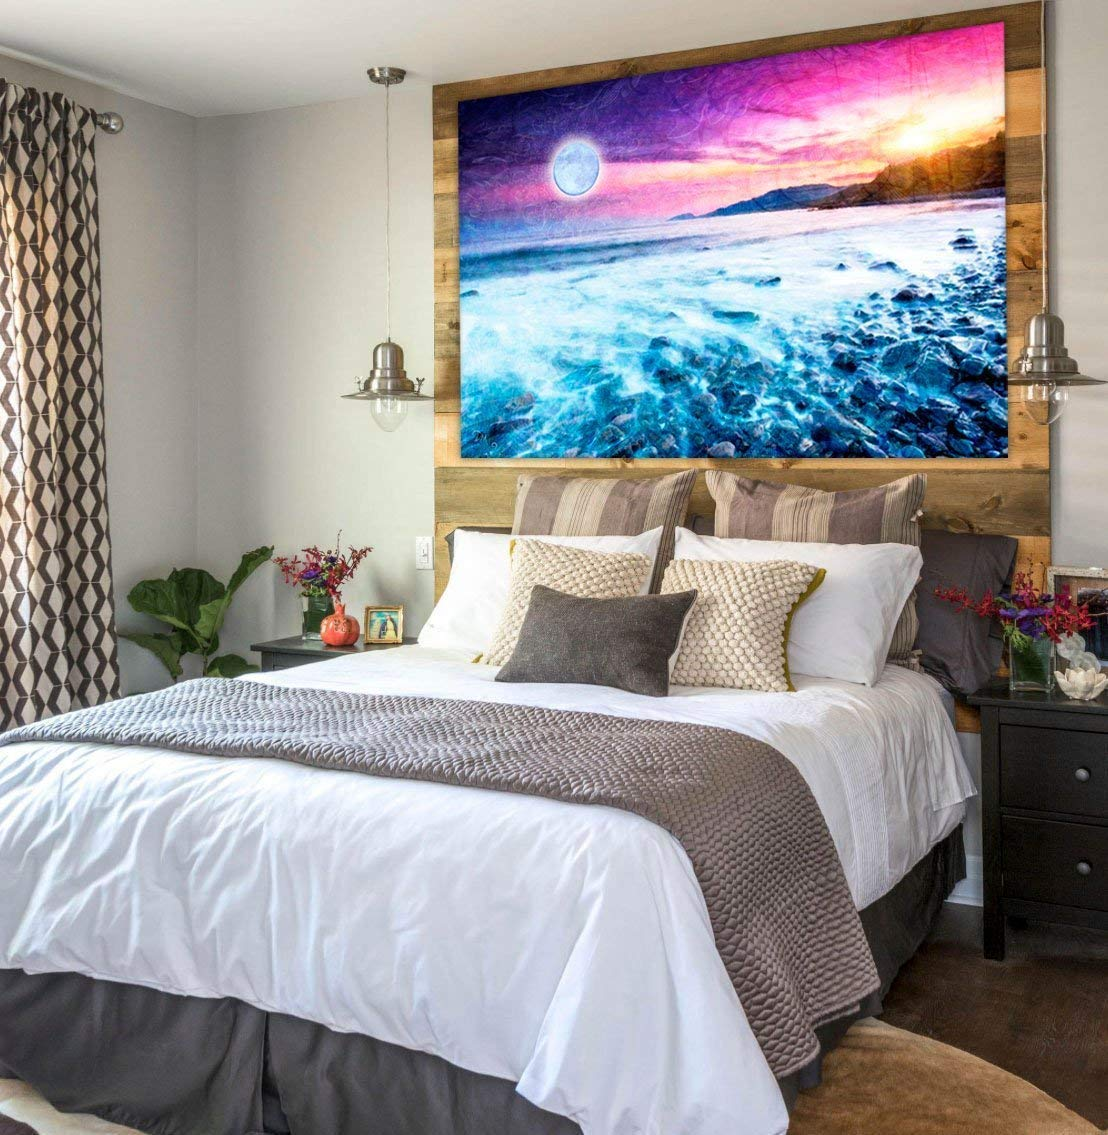 Full Moon Over Ocean Landscape Tapestry by Artist Dan Morris